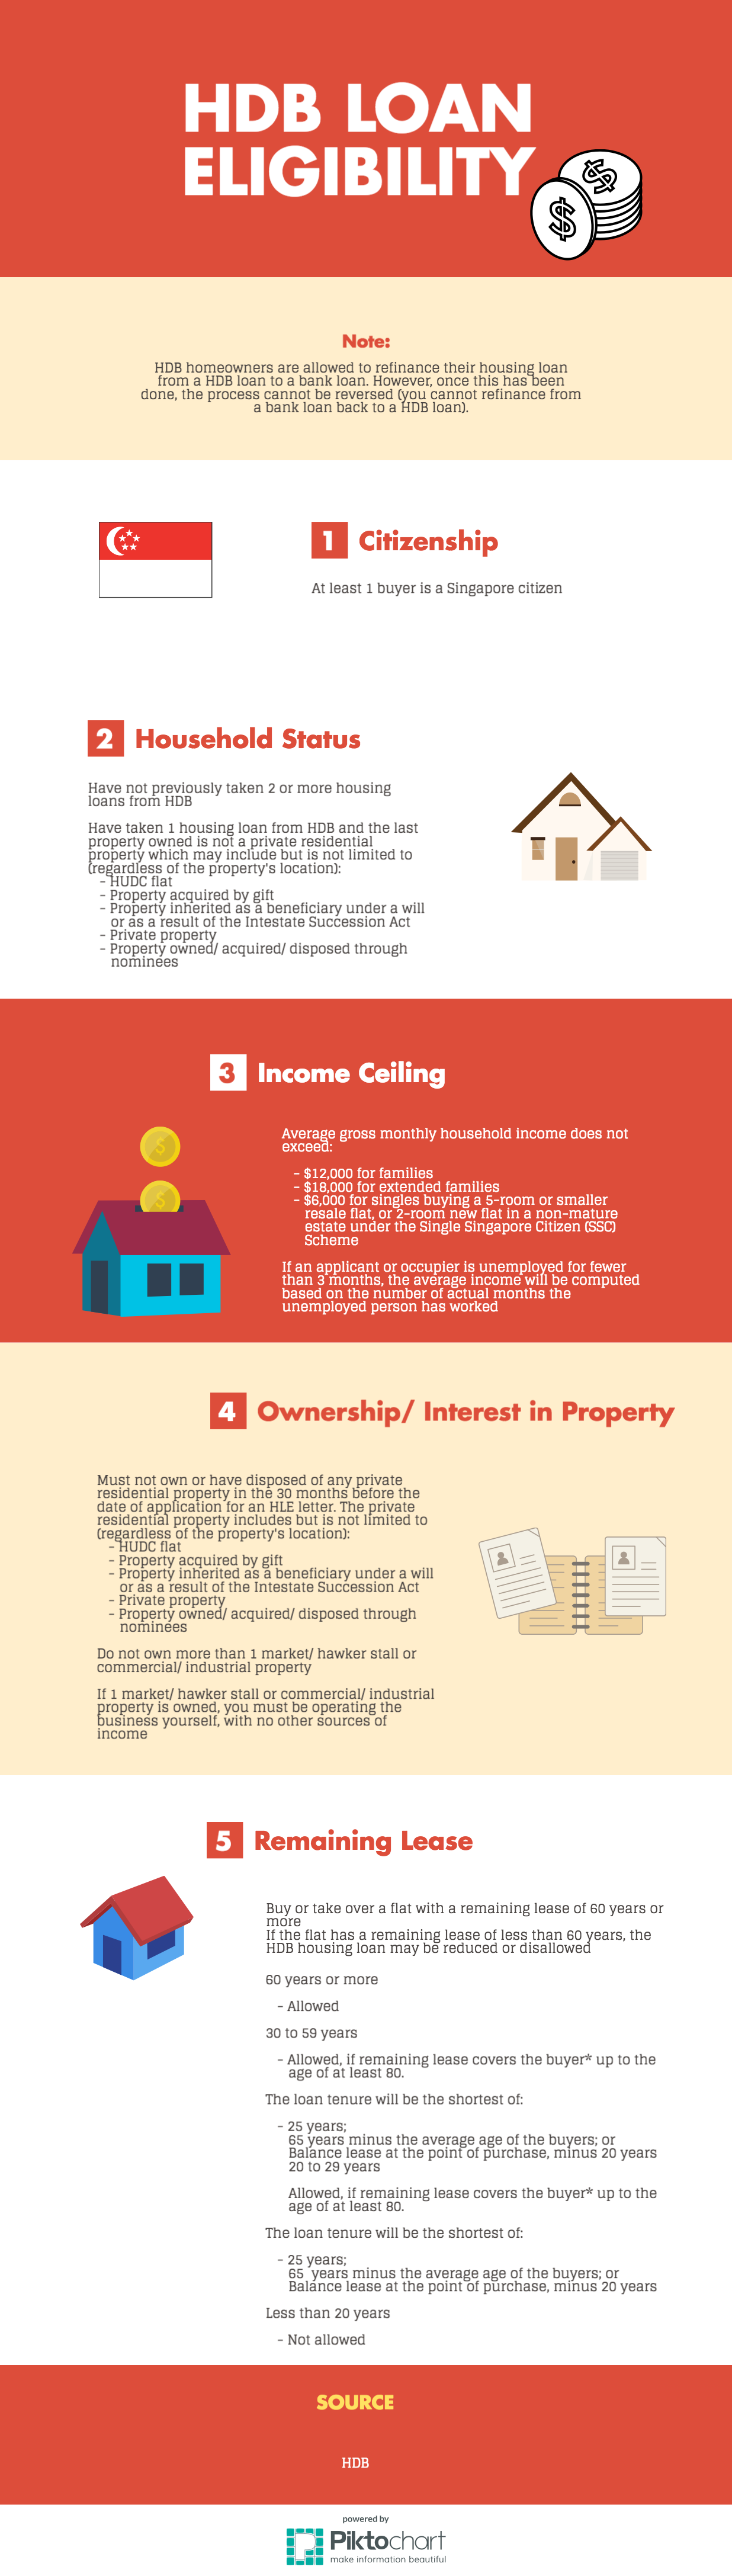 HDB loan eligibility infographic